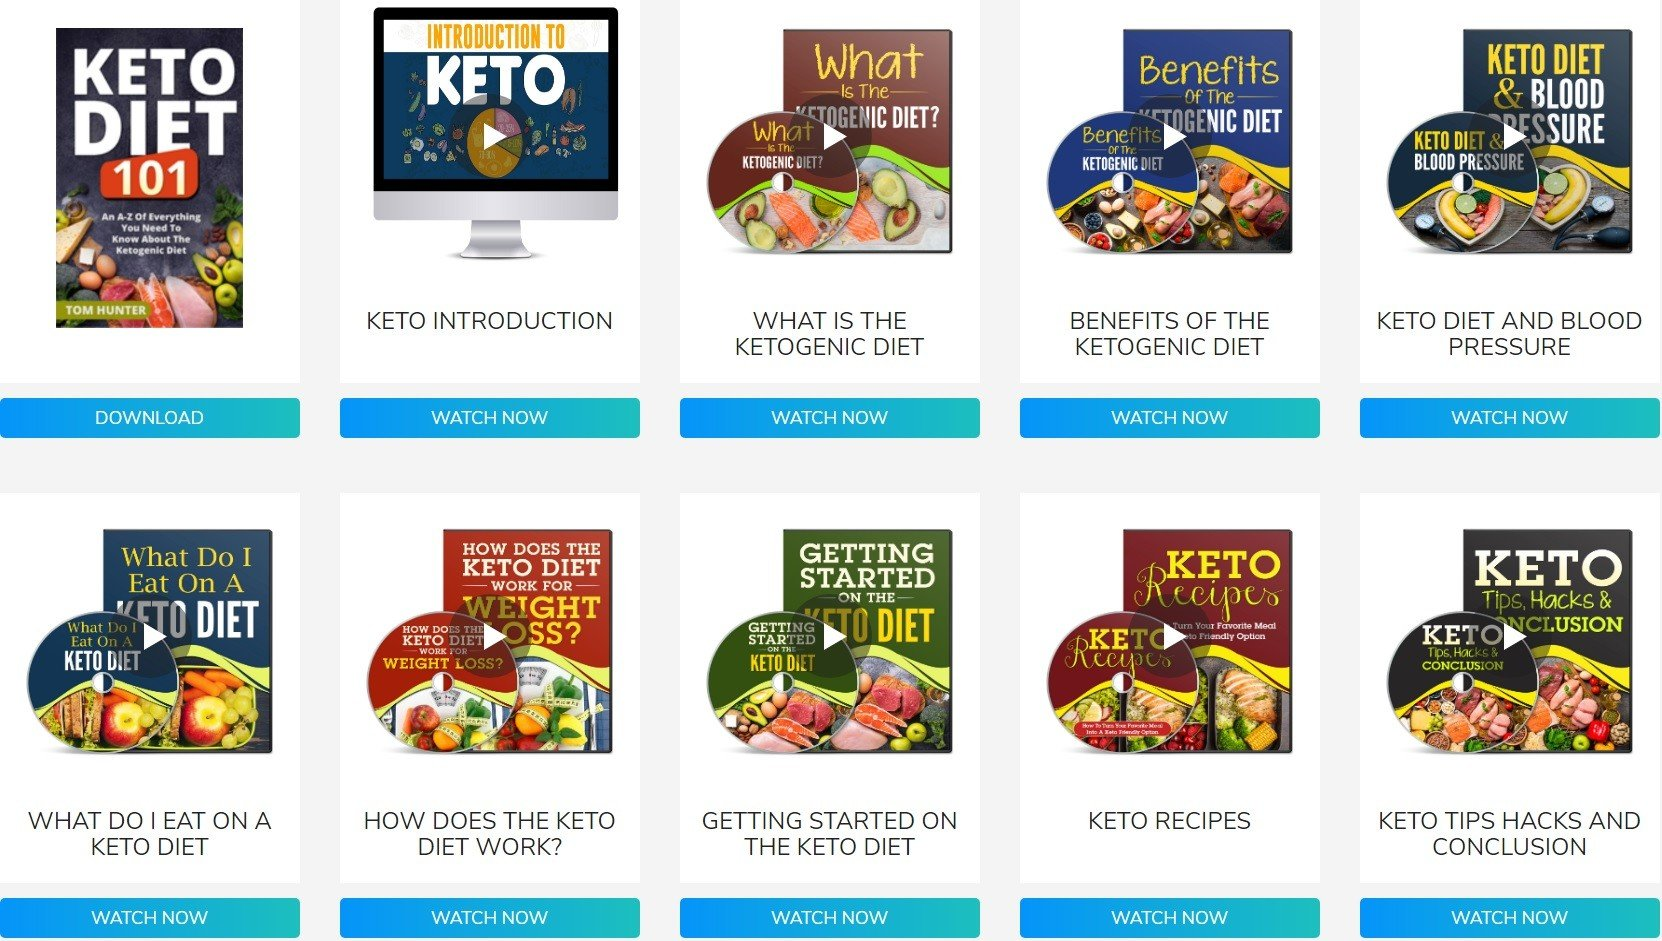 Custom Keto Diet  Plan Financial Services Coupon April